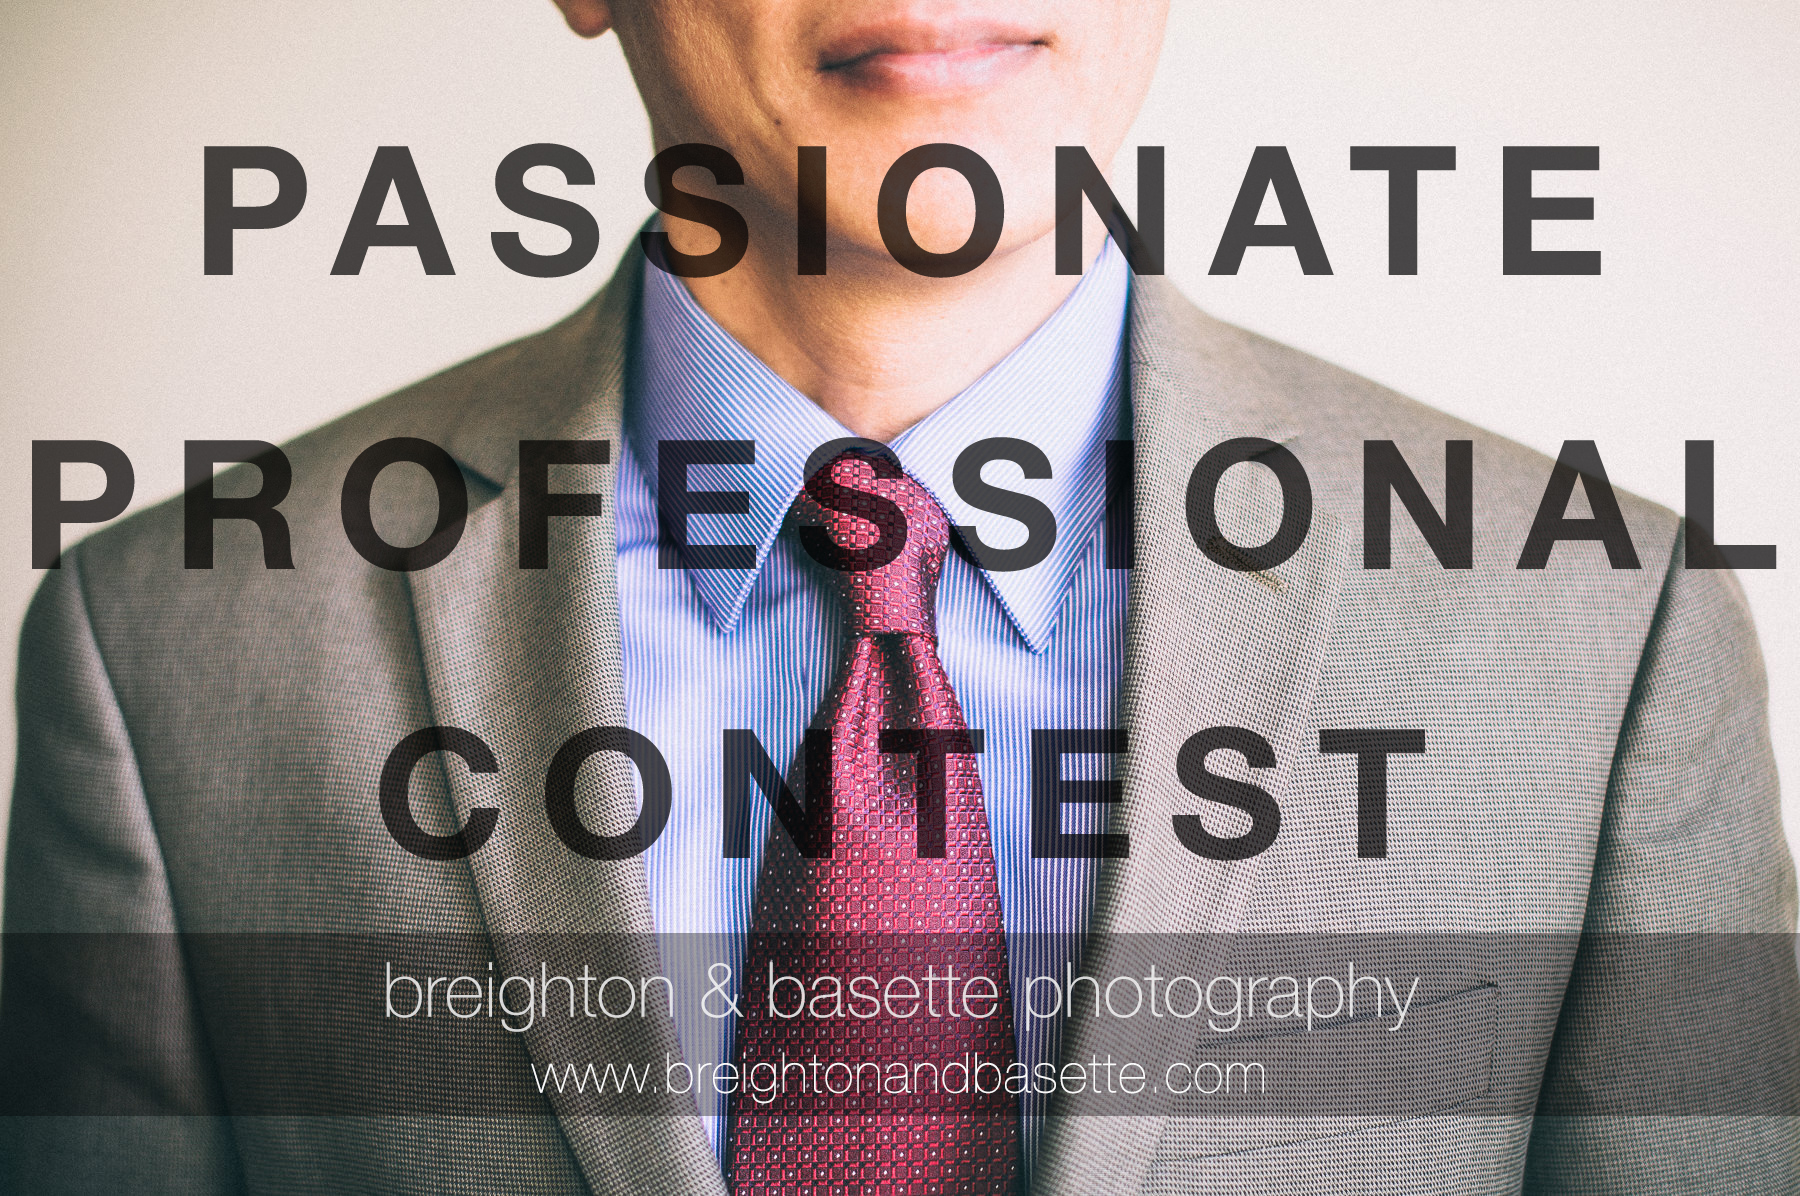 breighton-and-basette-photography-copyrighted-image-blog-passionate-professional-contest-promo-image-1.jpg